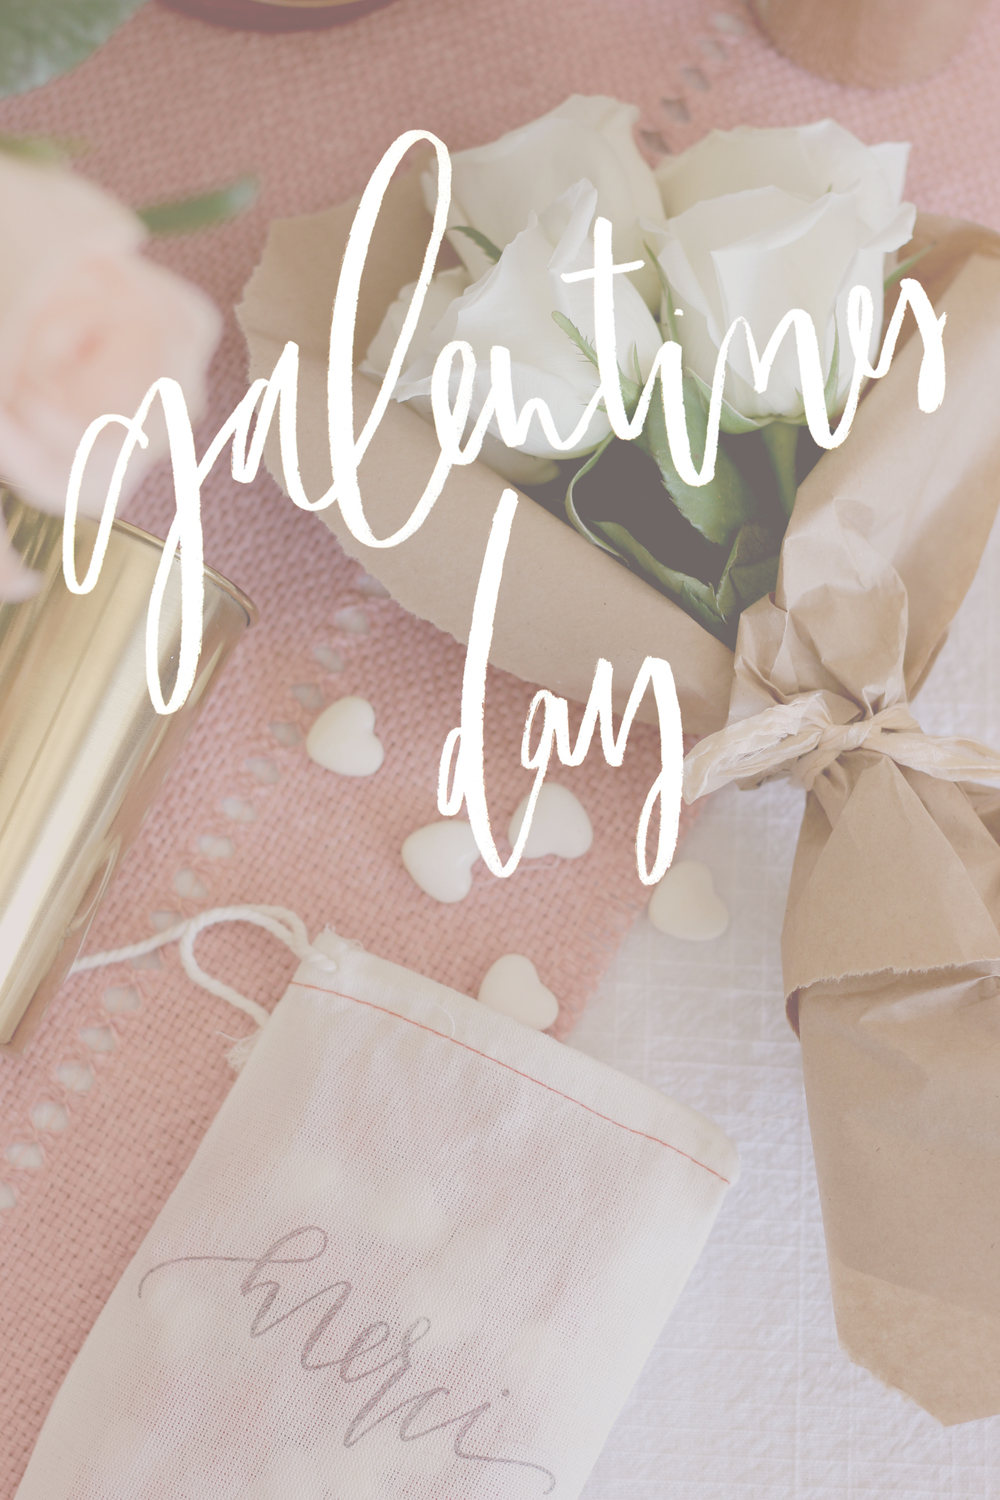 A guide to a galentines day gathering | A Fabulous Fete